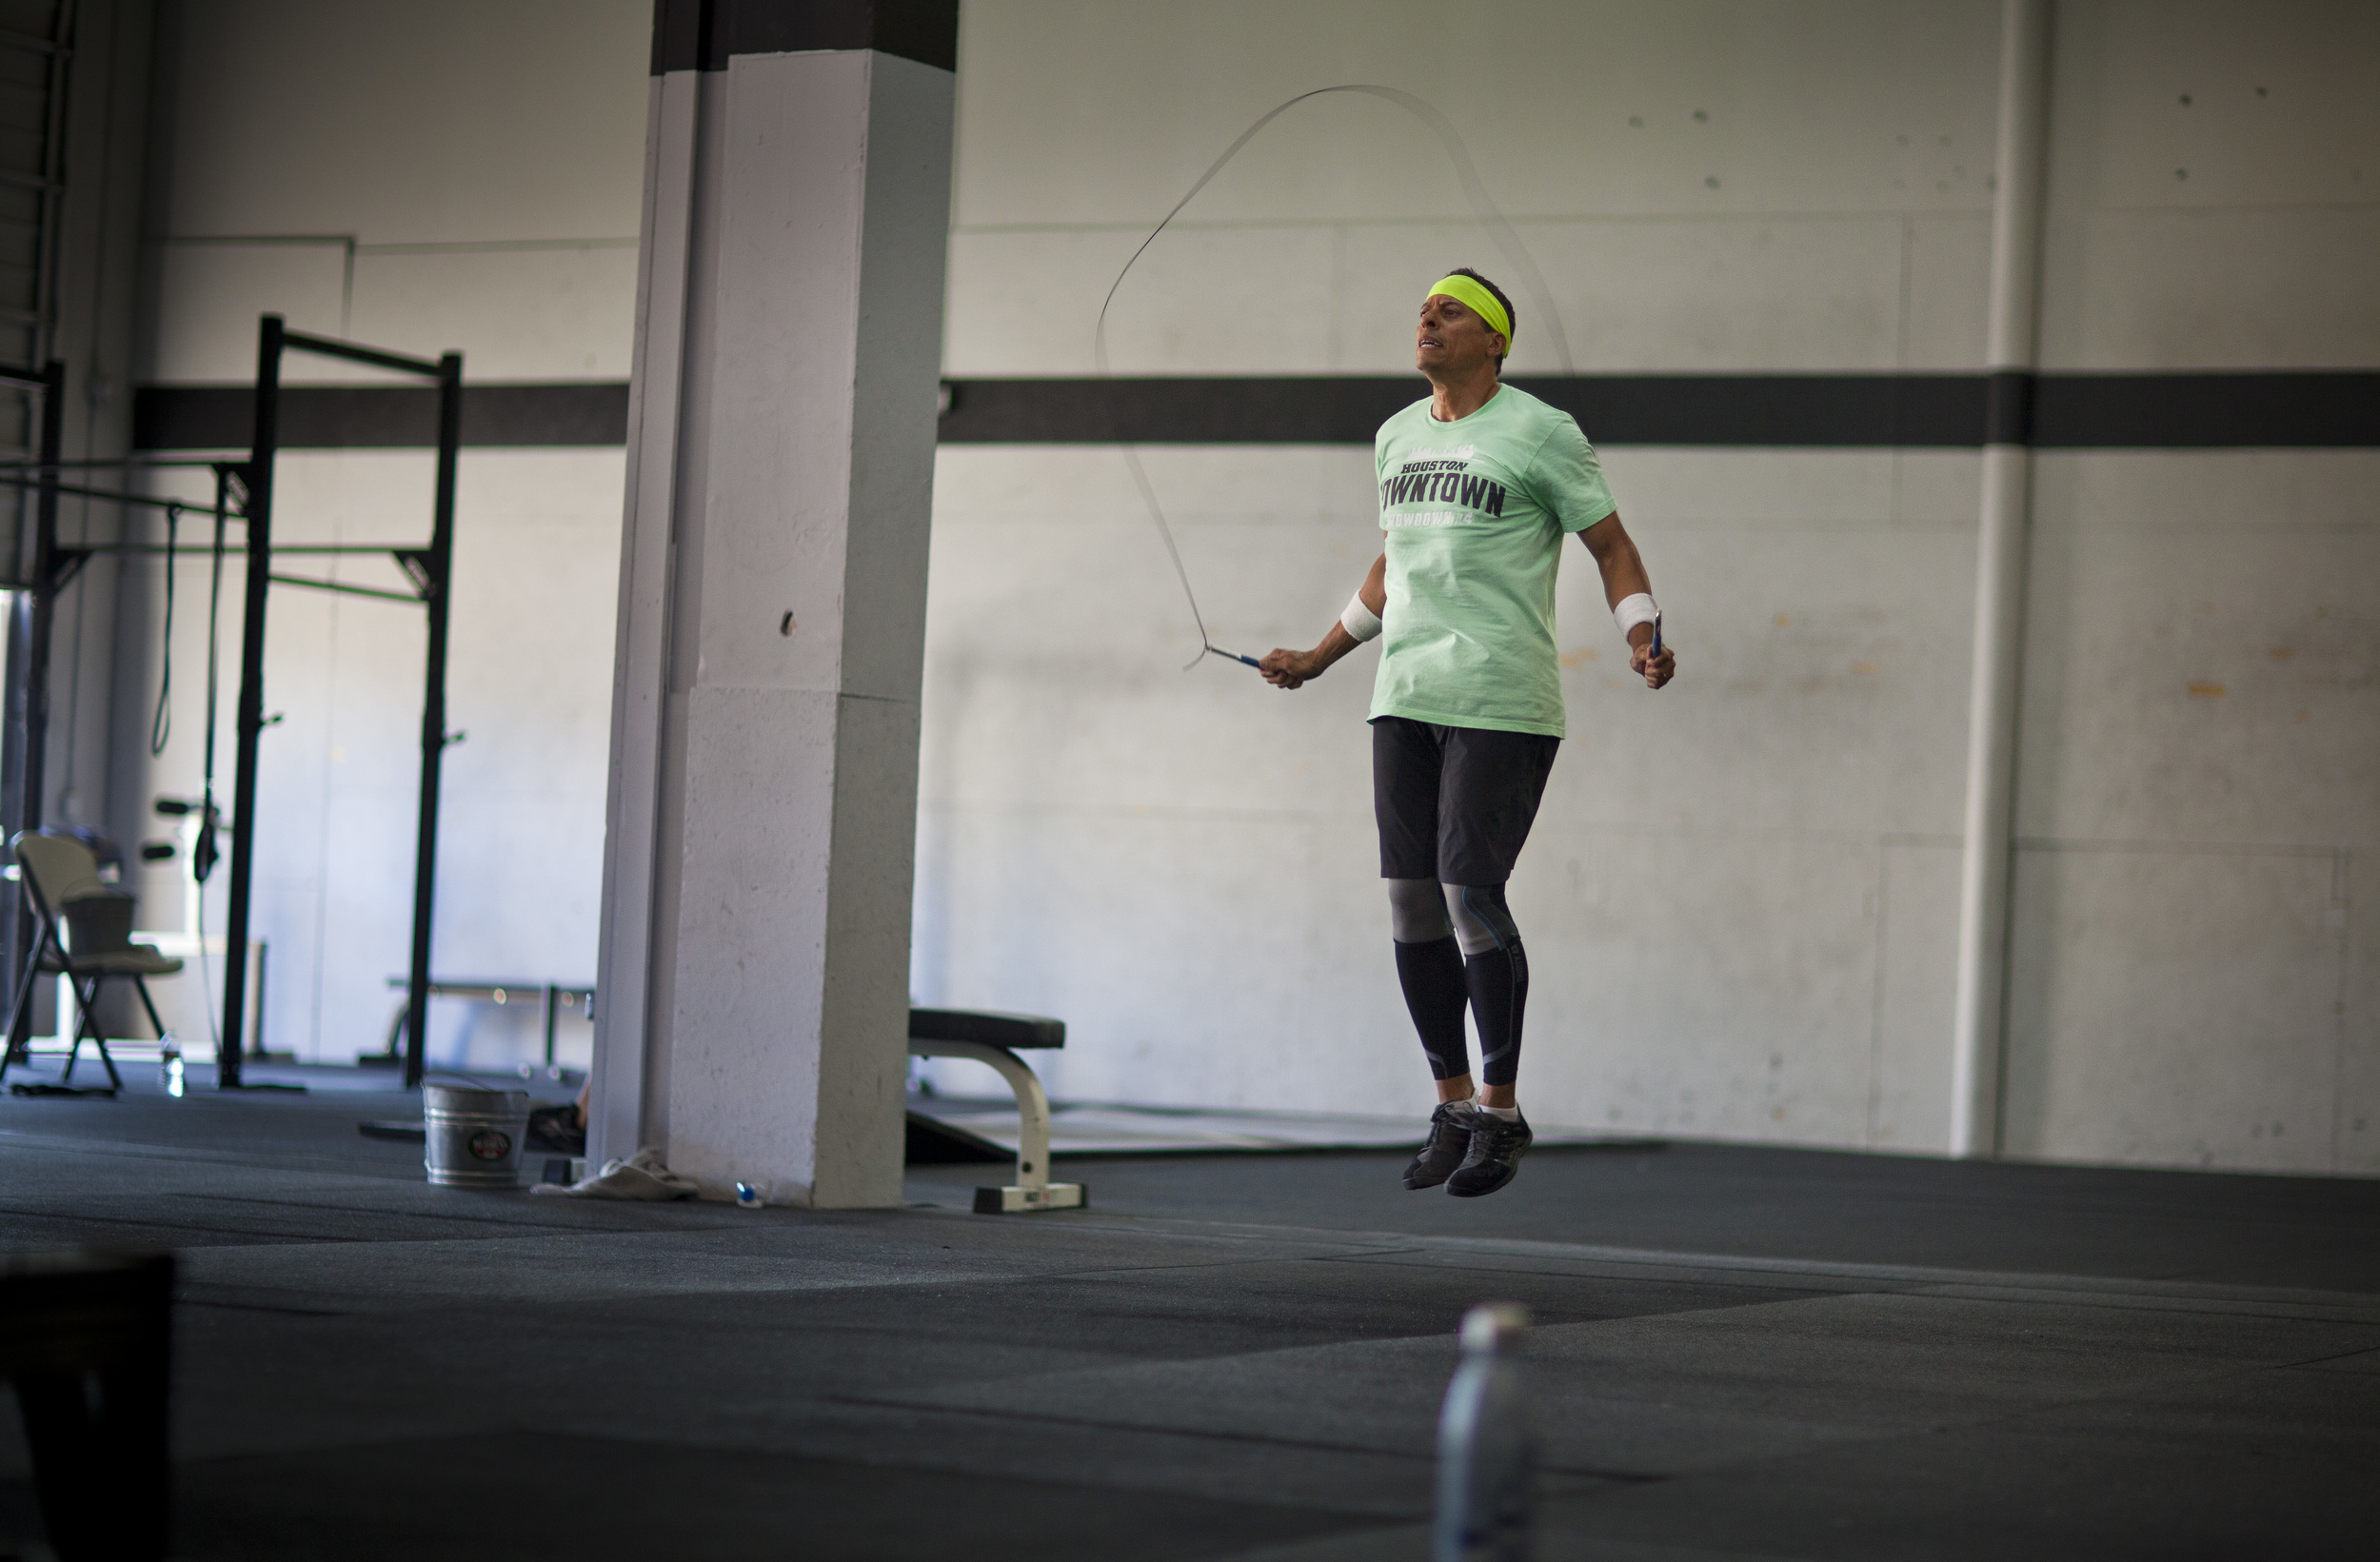 """Congrats Judge Carter from your friends at Skyline CrossFit. Judge Carter has been the leading advocate on mental health of our veterans coming home. With Veterans Day coming up I thought it would be fitting to honor someone who helps those who so desperately need our help. As one article put it:""""Judge Carter is a true champion for veterans' mental health,"""" said Susan Fordice, president and CEO of Mental Health America of Greater Houston. """"His work, strong voice and community involvement has helped to increase awareness and understanding of behavioral health conditions among veterans, encouraged changes in the criminal justice system, and helped to redefine the way communities address mental health in Harris County. It is a rare and special individual who makes this kind of commitment.""""  Thank you Judge Carter  From your Skyline Family  For more information I have attached an article that was featured on 60 minutes.  http://www.cbsnews.com/news/coming-home-justice-for-our-veterans/"""